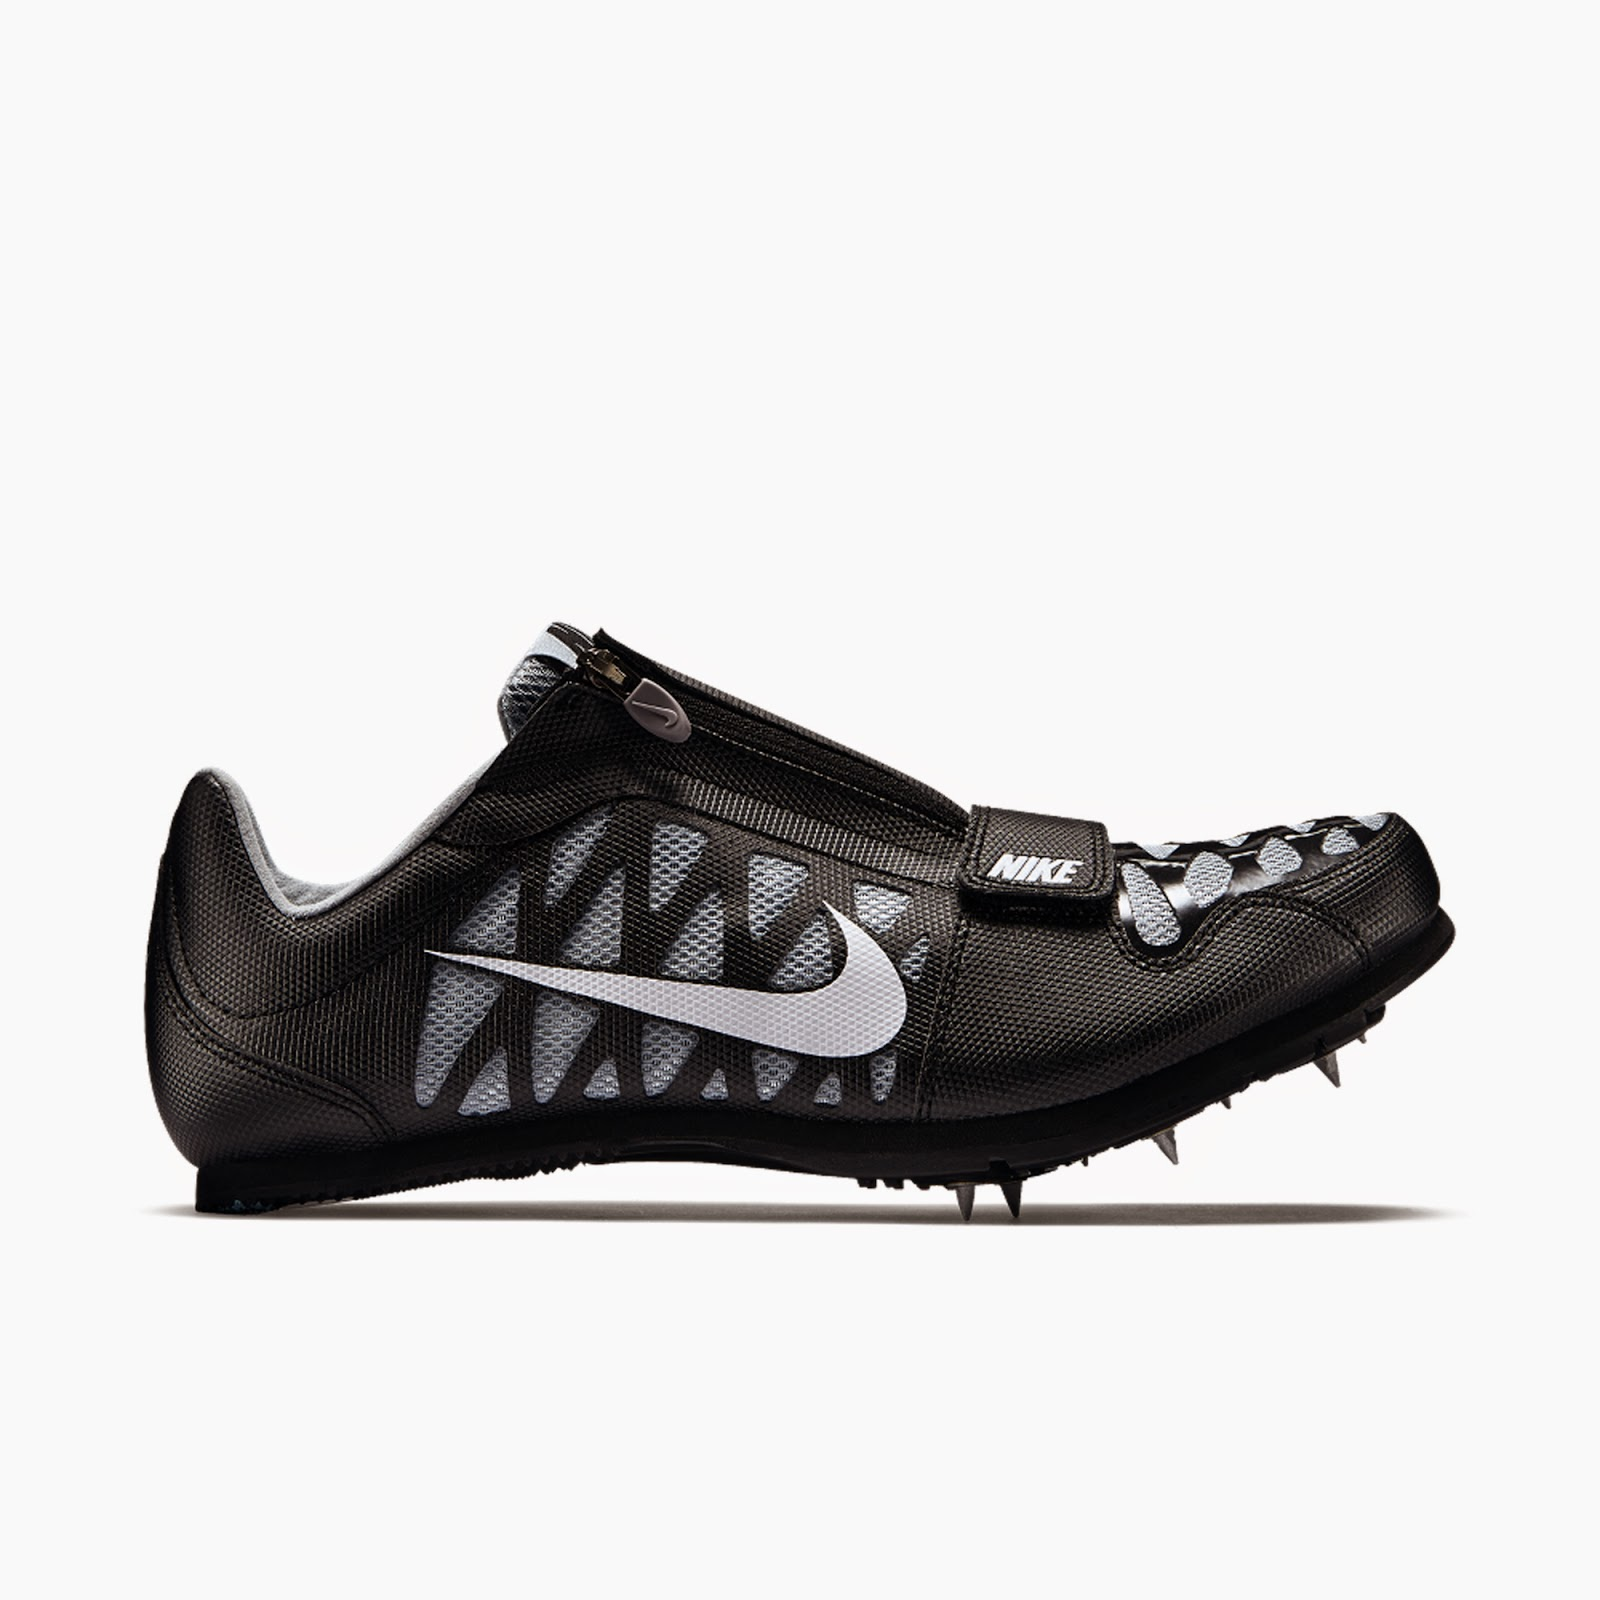 864638ab0adcd Featuring lightweight cushioning and seven spikes for powerful traction.  The synthetic leather upper uses a seamless construction for a great fit